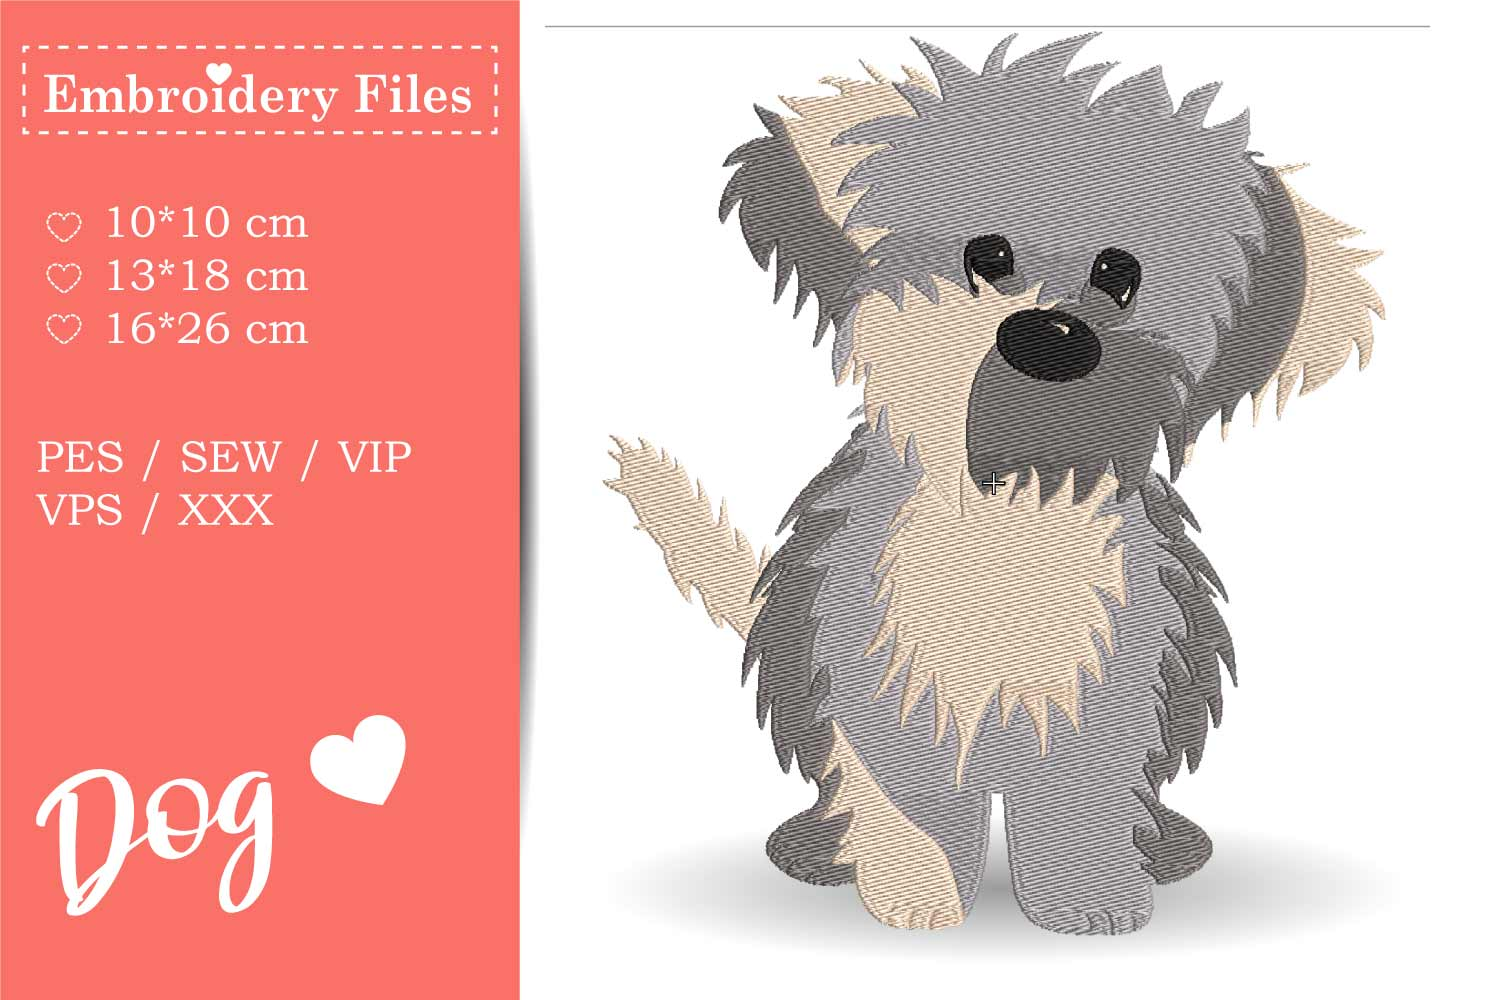 Dogs - Mini Bundle - Embroidery Files for Beginners example image 2